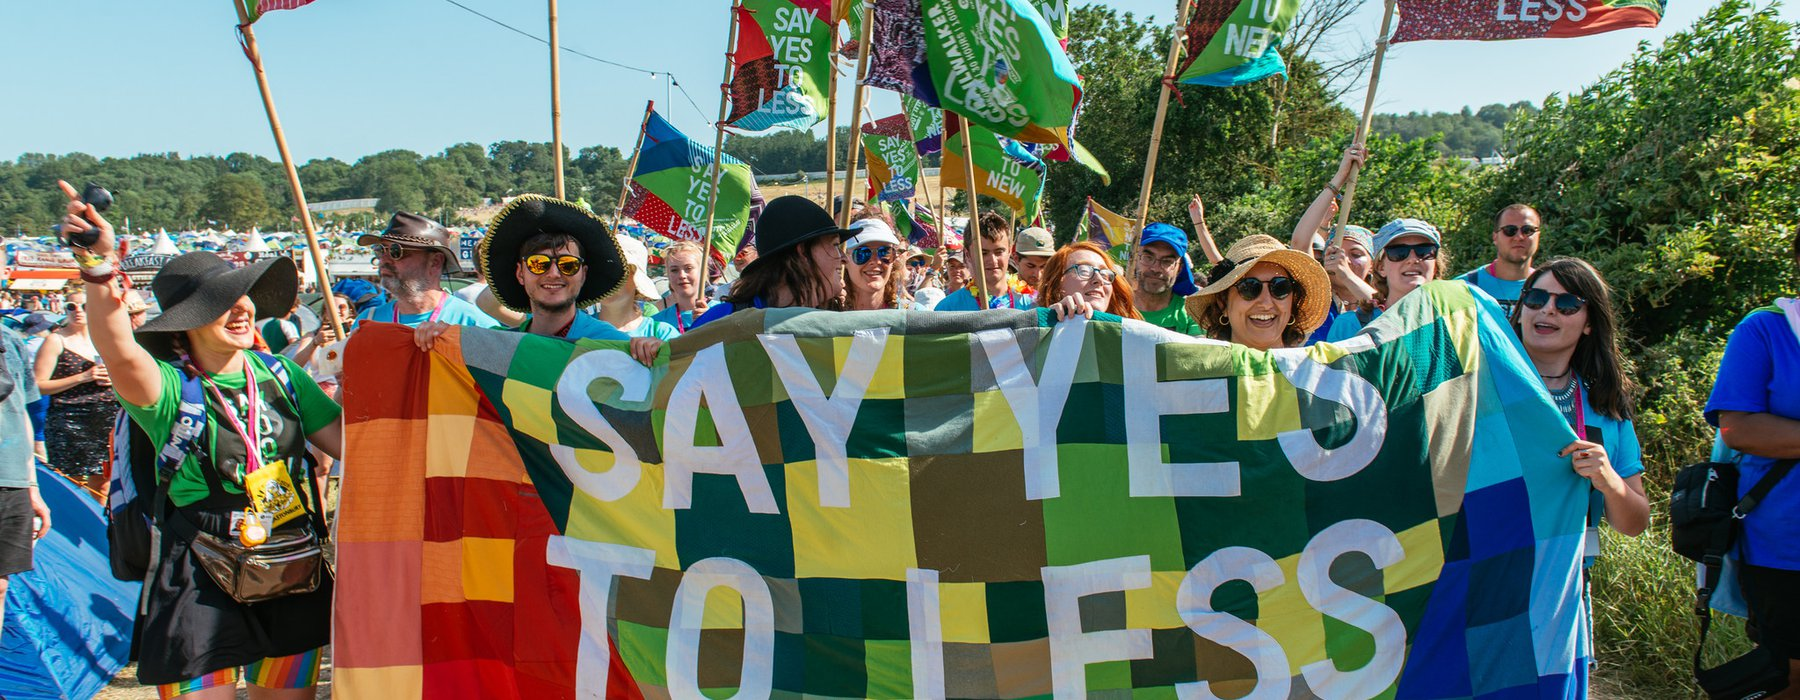 A group of volunteers stand by a patchwork banner that says 'say yes to less'